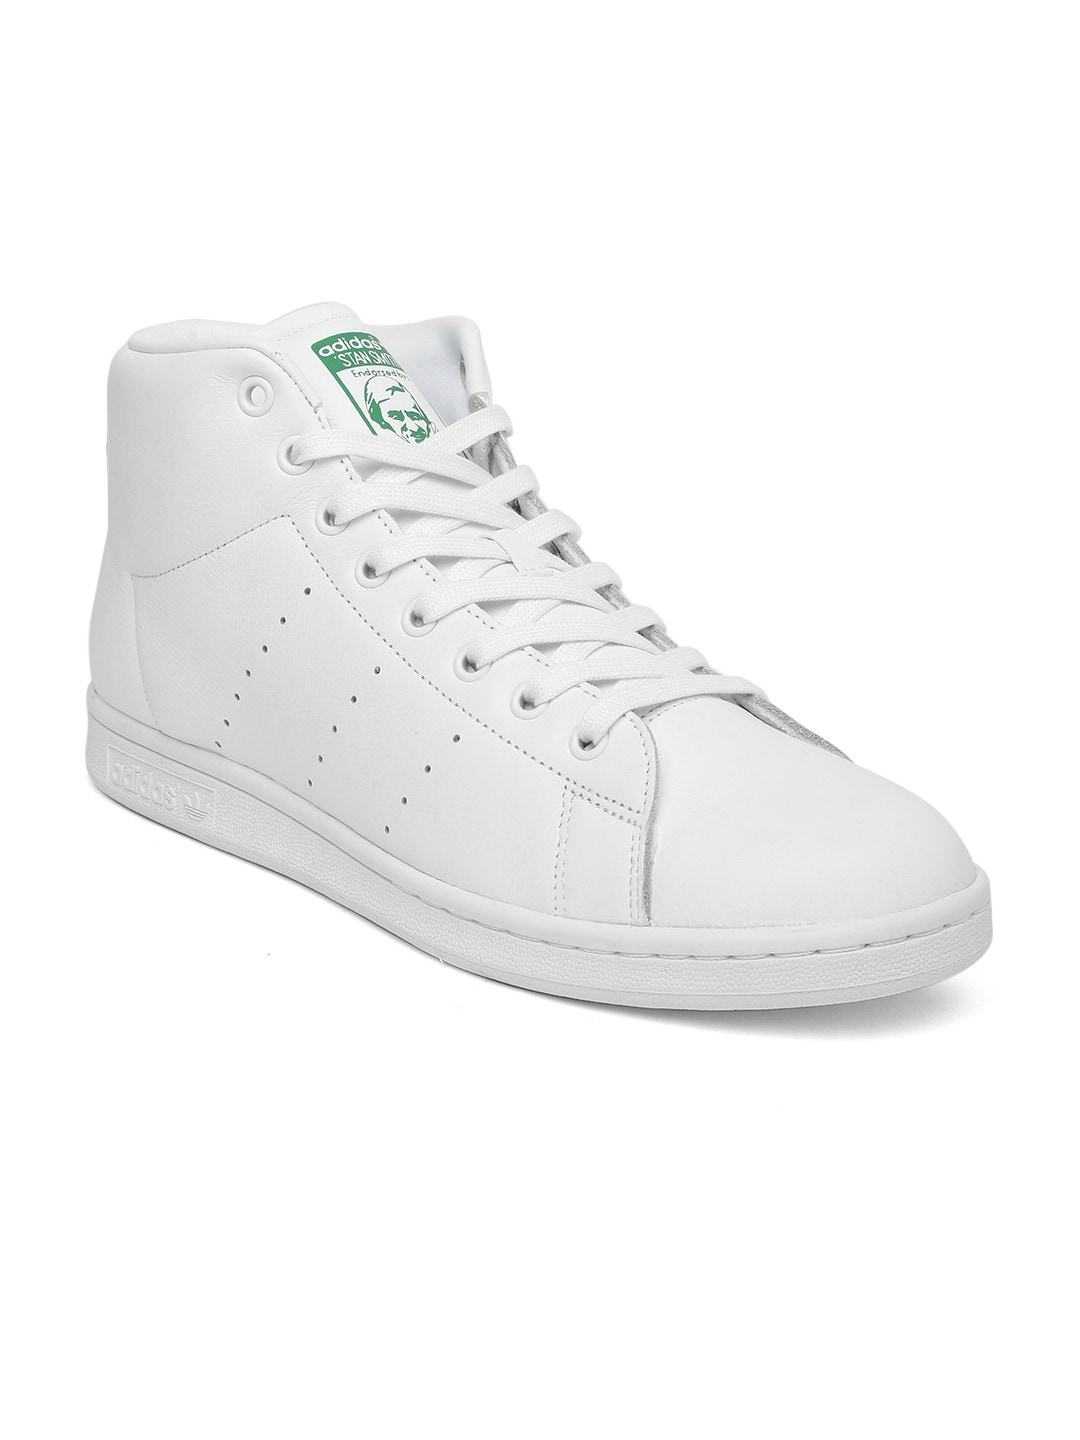 adidas Men's adidas Originals Stan Smith Shoes adidas India